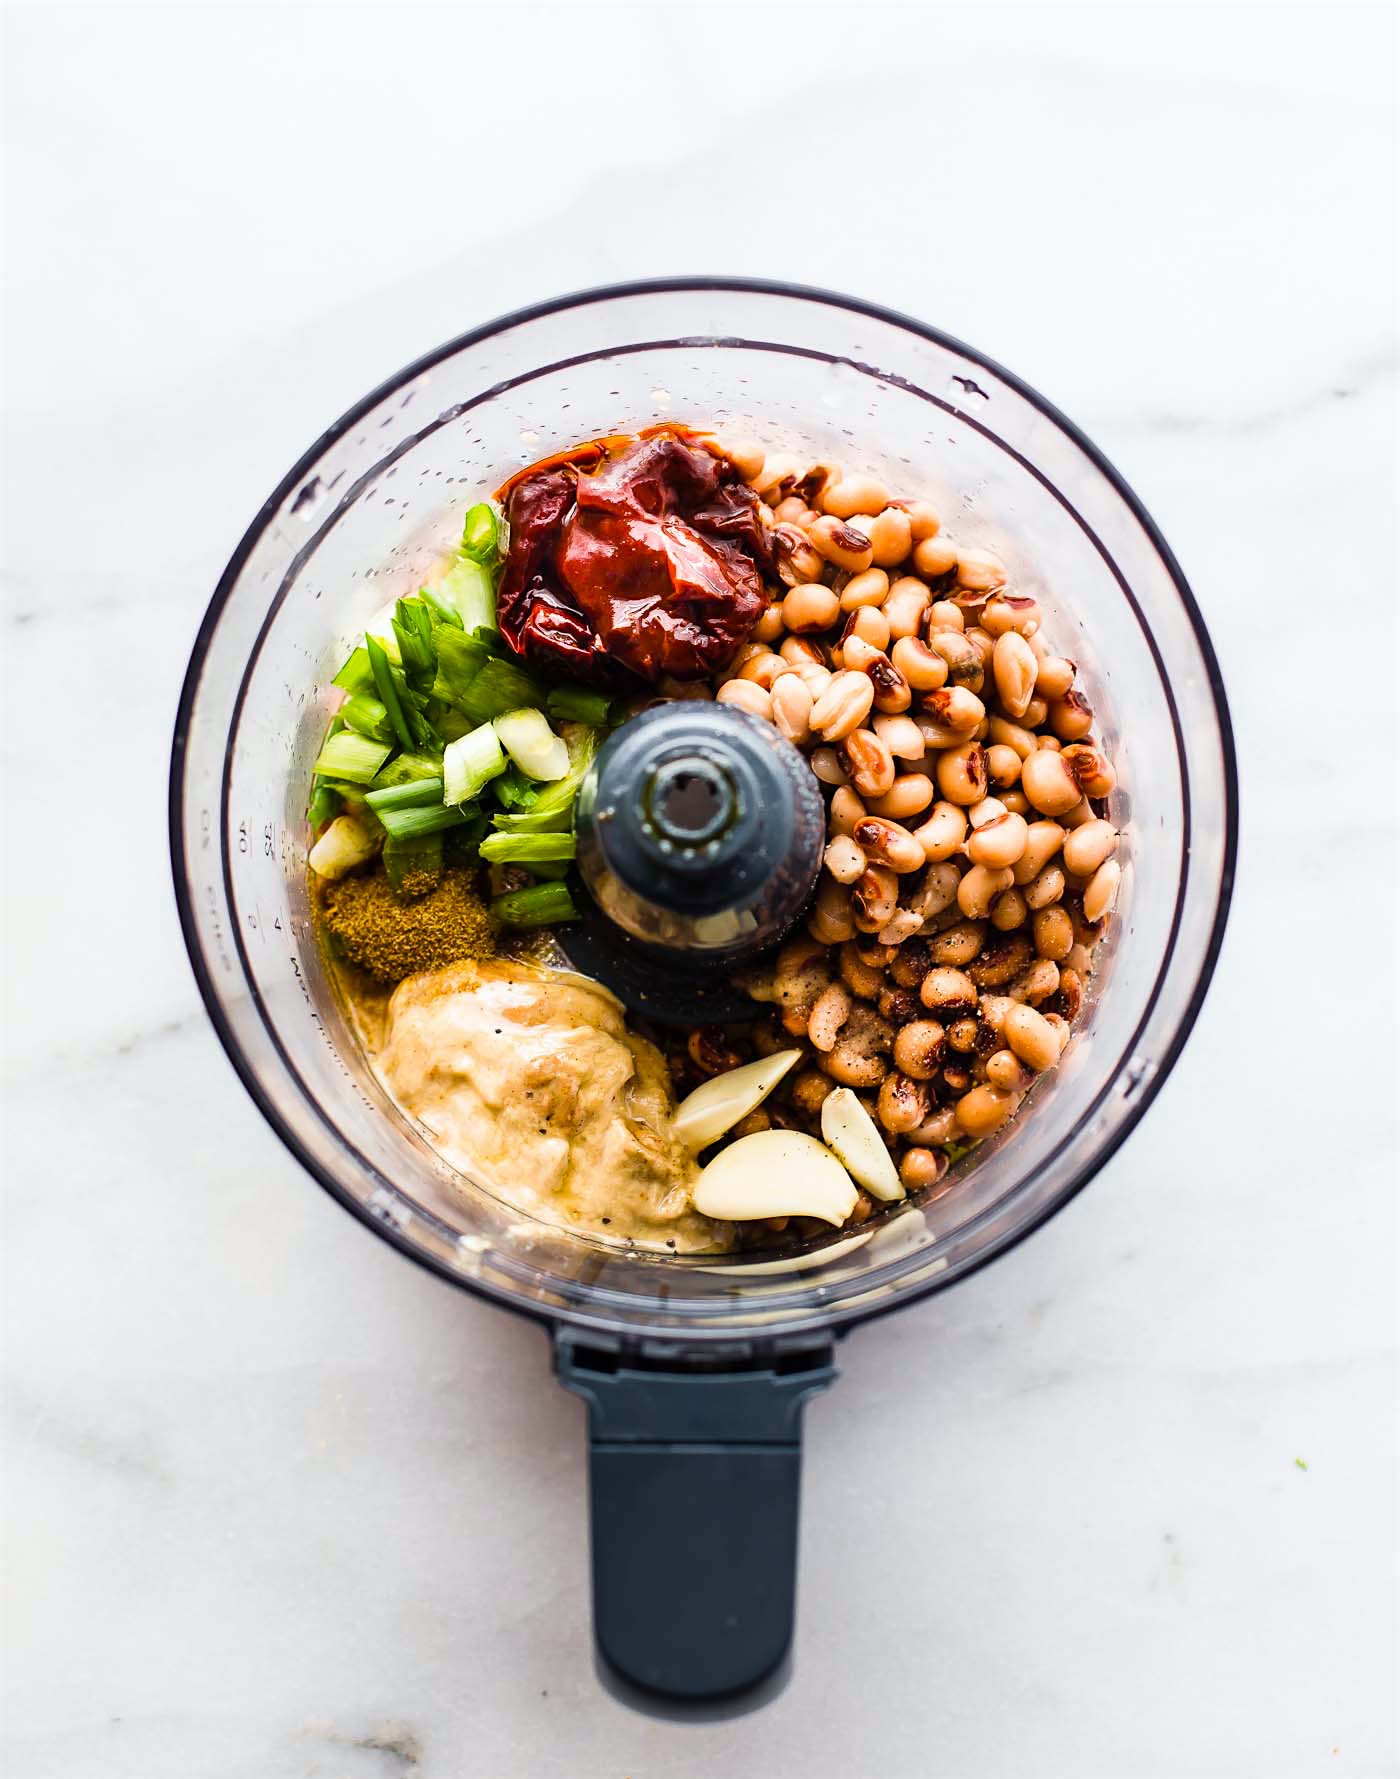 Vegan Chipotle Black Eyed Peas Hummus to start off the New Year. A fun Spicy twist on classic hummus with black-eyed-peas in place of garbanzo beans! This healthy hummus packs in some spice and flavor with the addition of chipotle peppers, onion, and garlic. Smokey, creamy, and gluten free! Perfect option for a quick snack or appetizer.